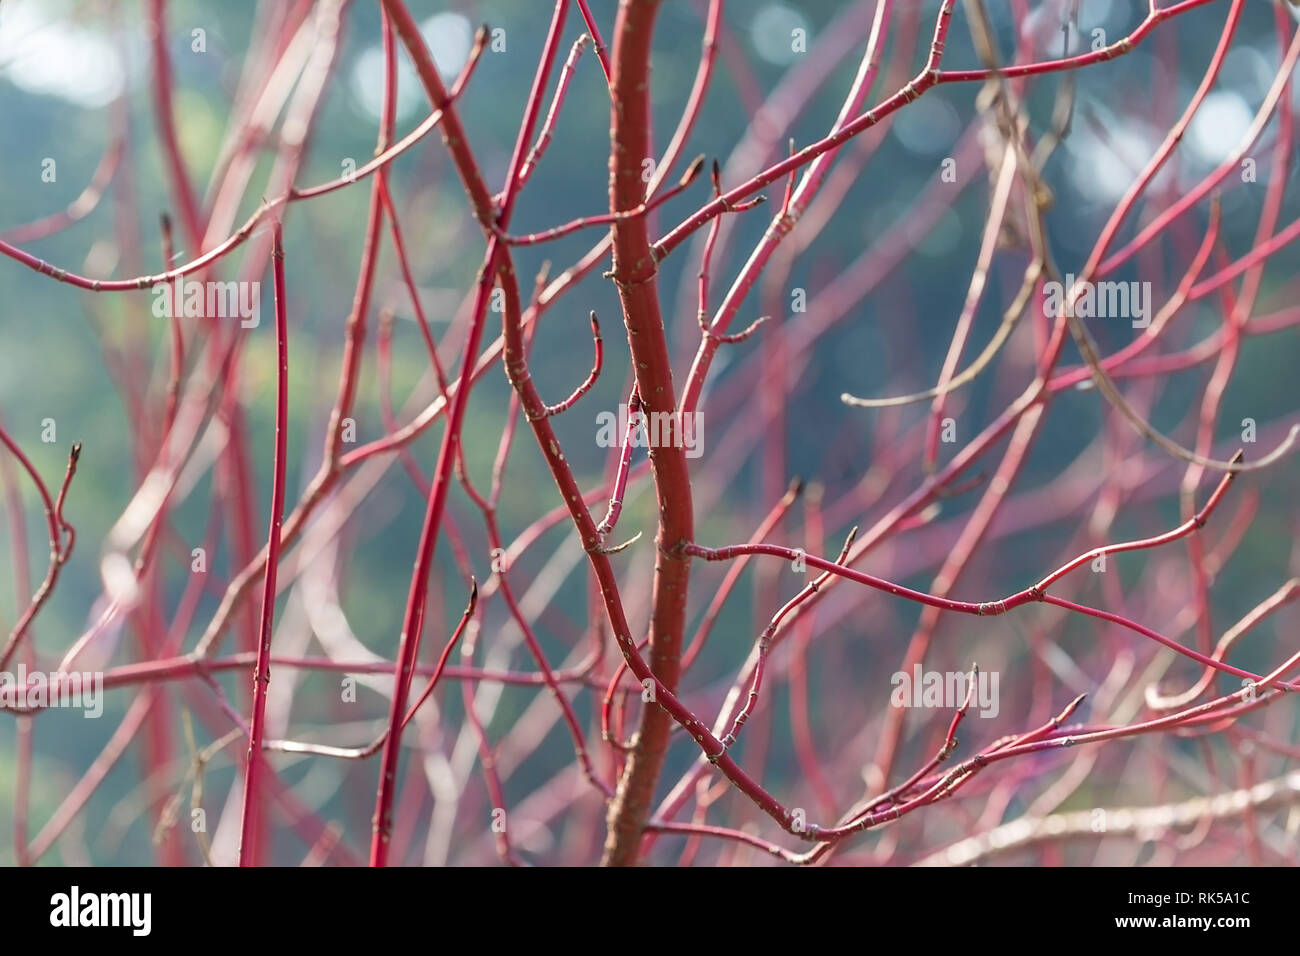 Abstract colorful Background. Dogwood, Cornus alba Sibirica, Westonbirt Dogwood, with brilliant red stems which make an outstanding display in the win - Stock Image